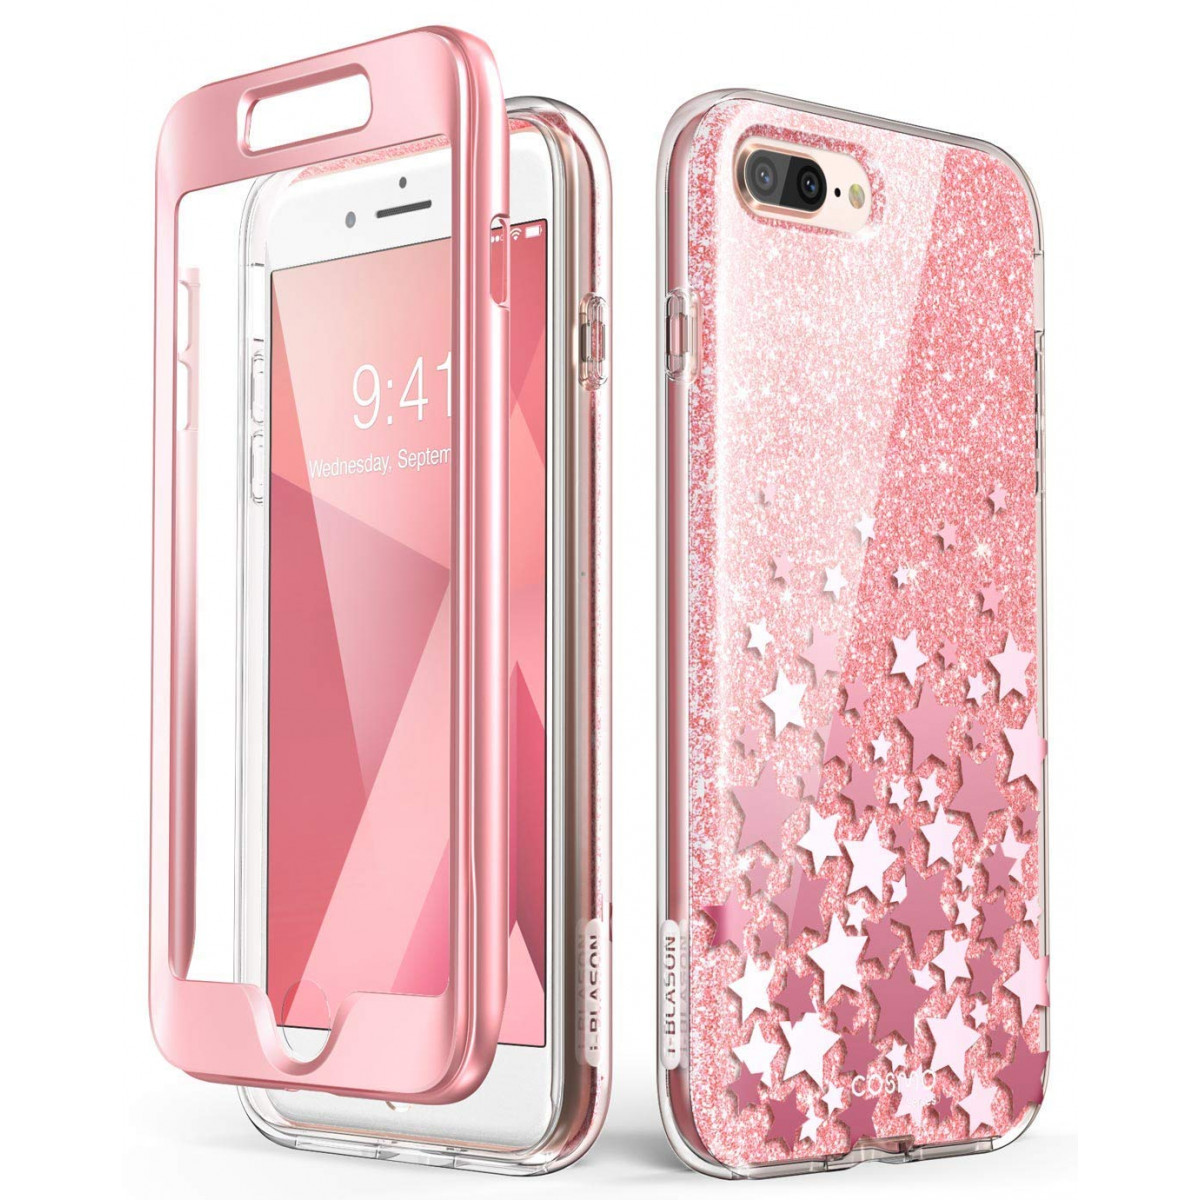 new product 24d85 aa209 iPhone 8 Plus Case,iPhone 7 Plus Case, [Built-in Screen Protector] i-Blason  [Cosmo] Glitter Clear Bumper Case for iPhone 8 Plus and iPhone 7 Plus